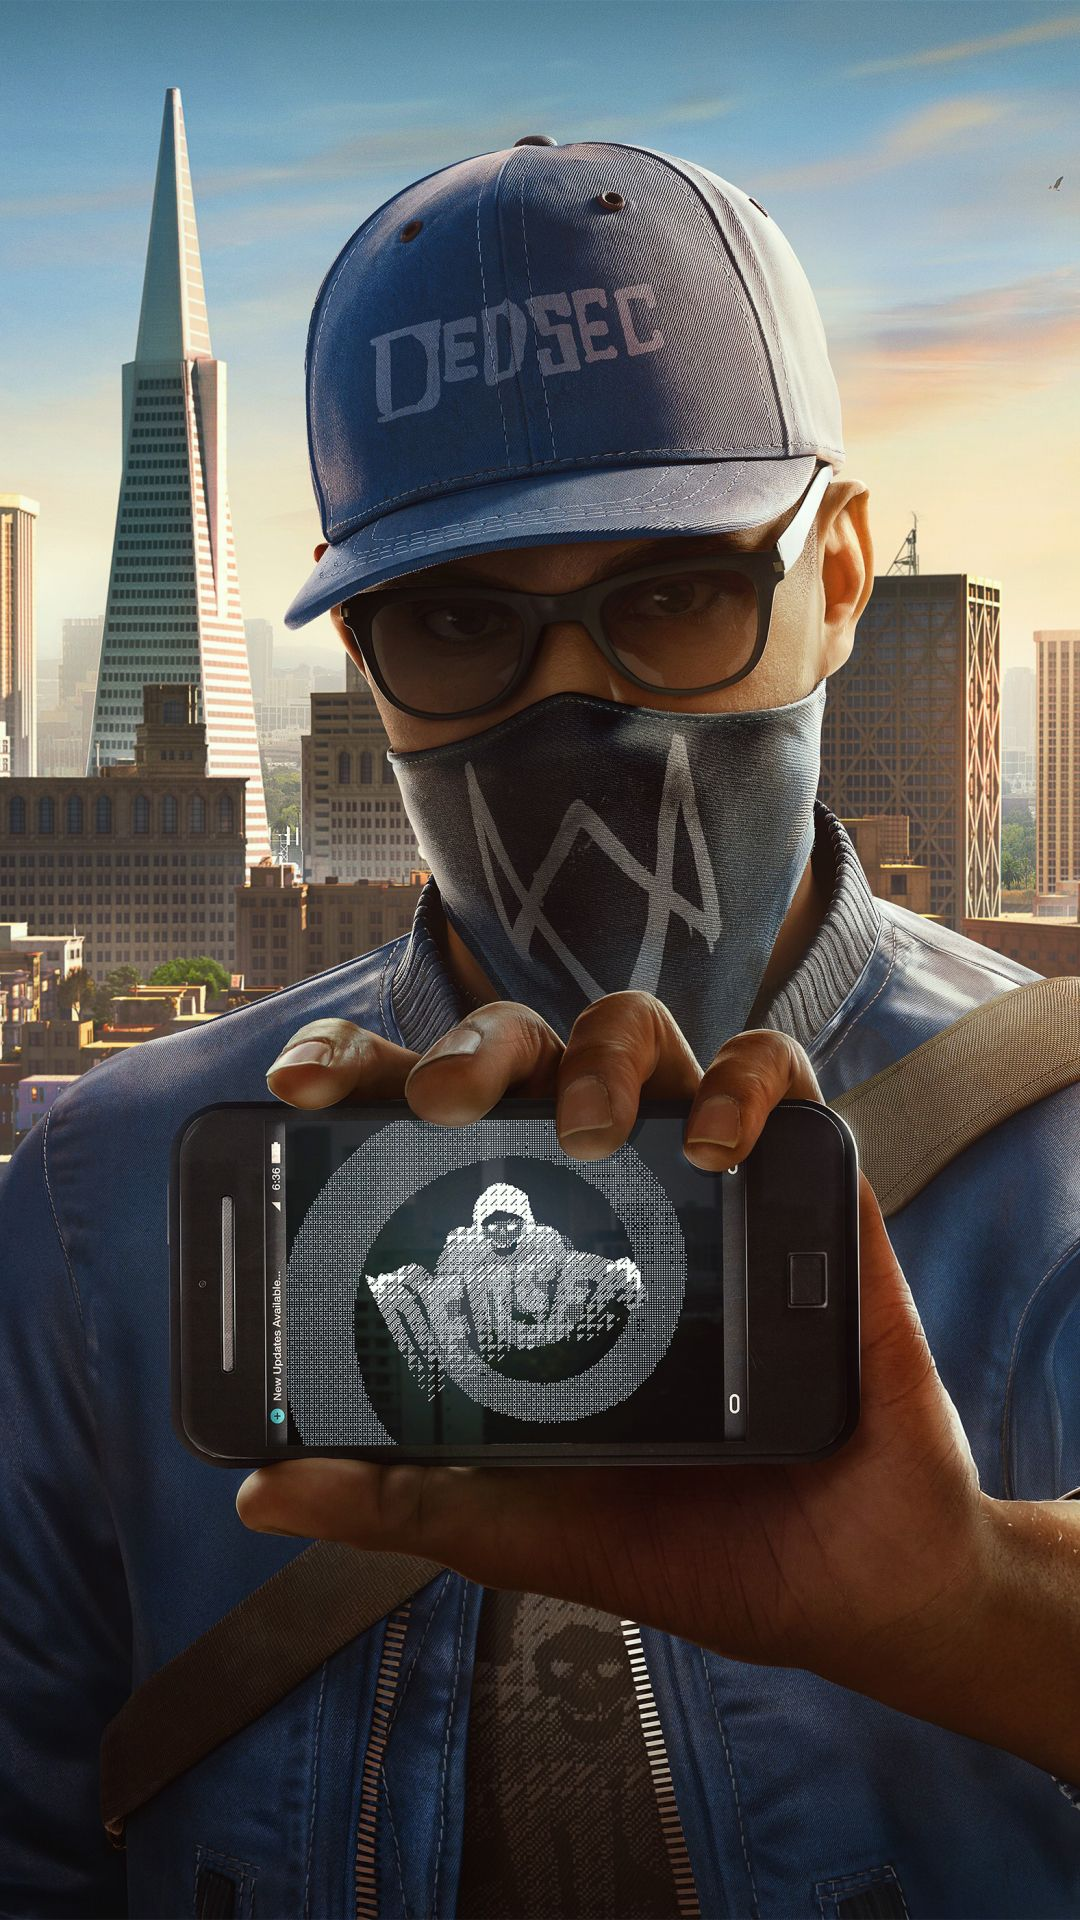 Pin On Watch Dogs 2 Watch dogs 2 wallpaper hd for android